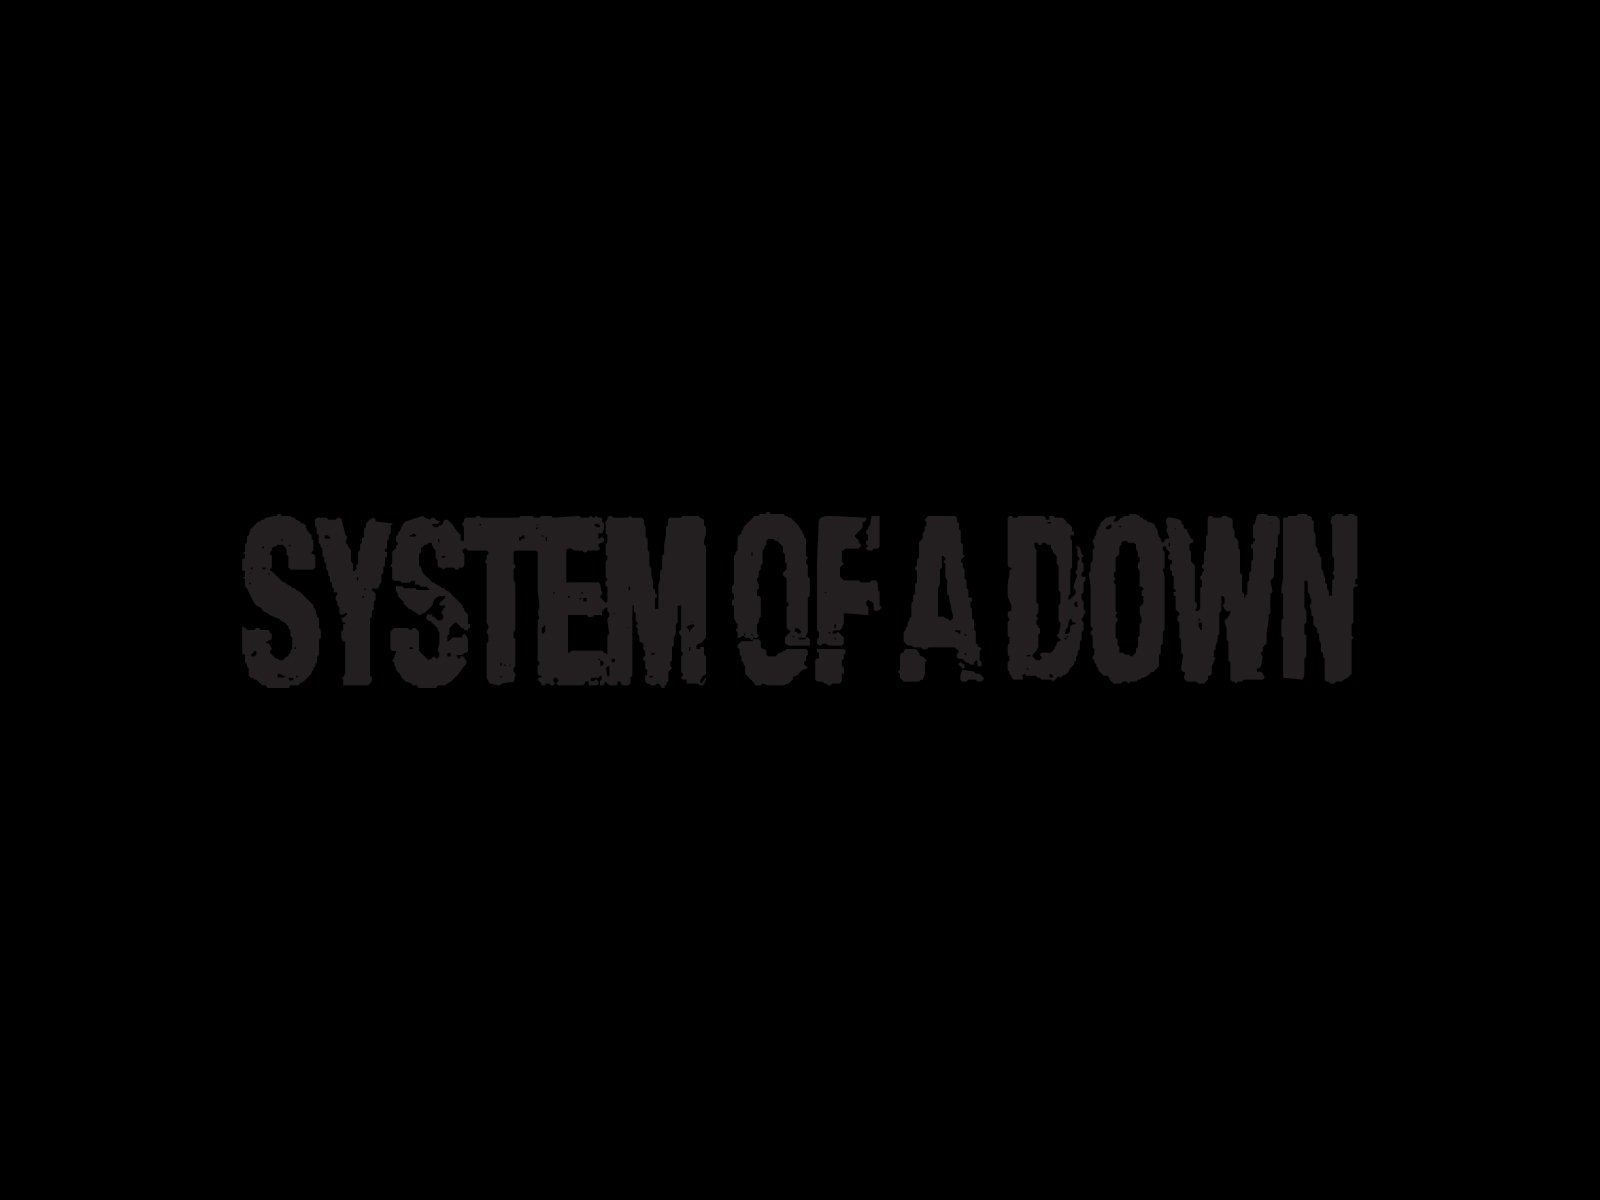 System Of A Down Wallpaper And Background Image 1600x1200 Id